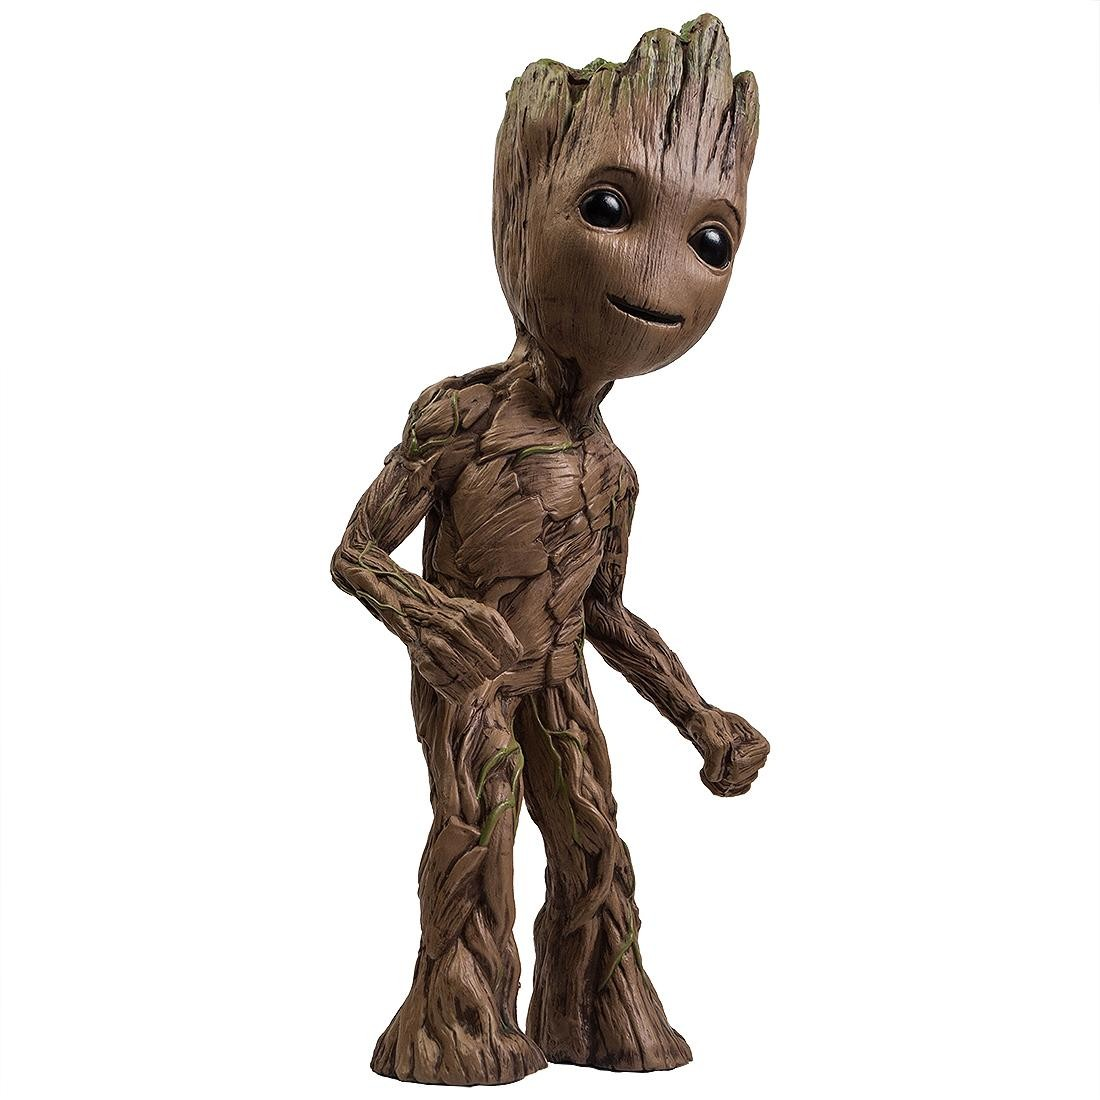 NECA Marvel Guardians of the Galaxy Vol. 2 Groot 30 Inch Foam Figure (brown)